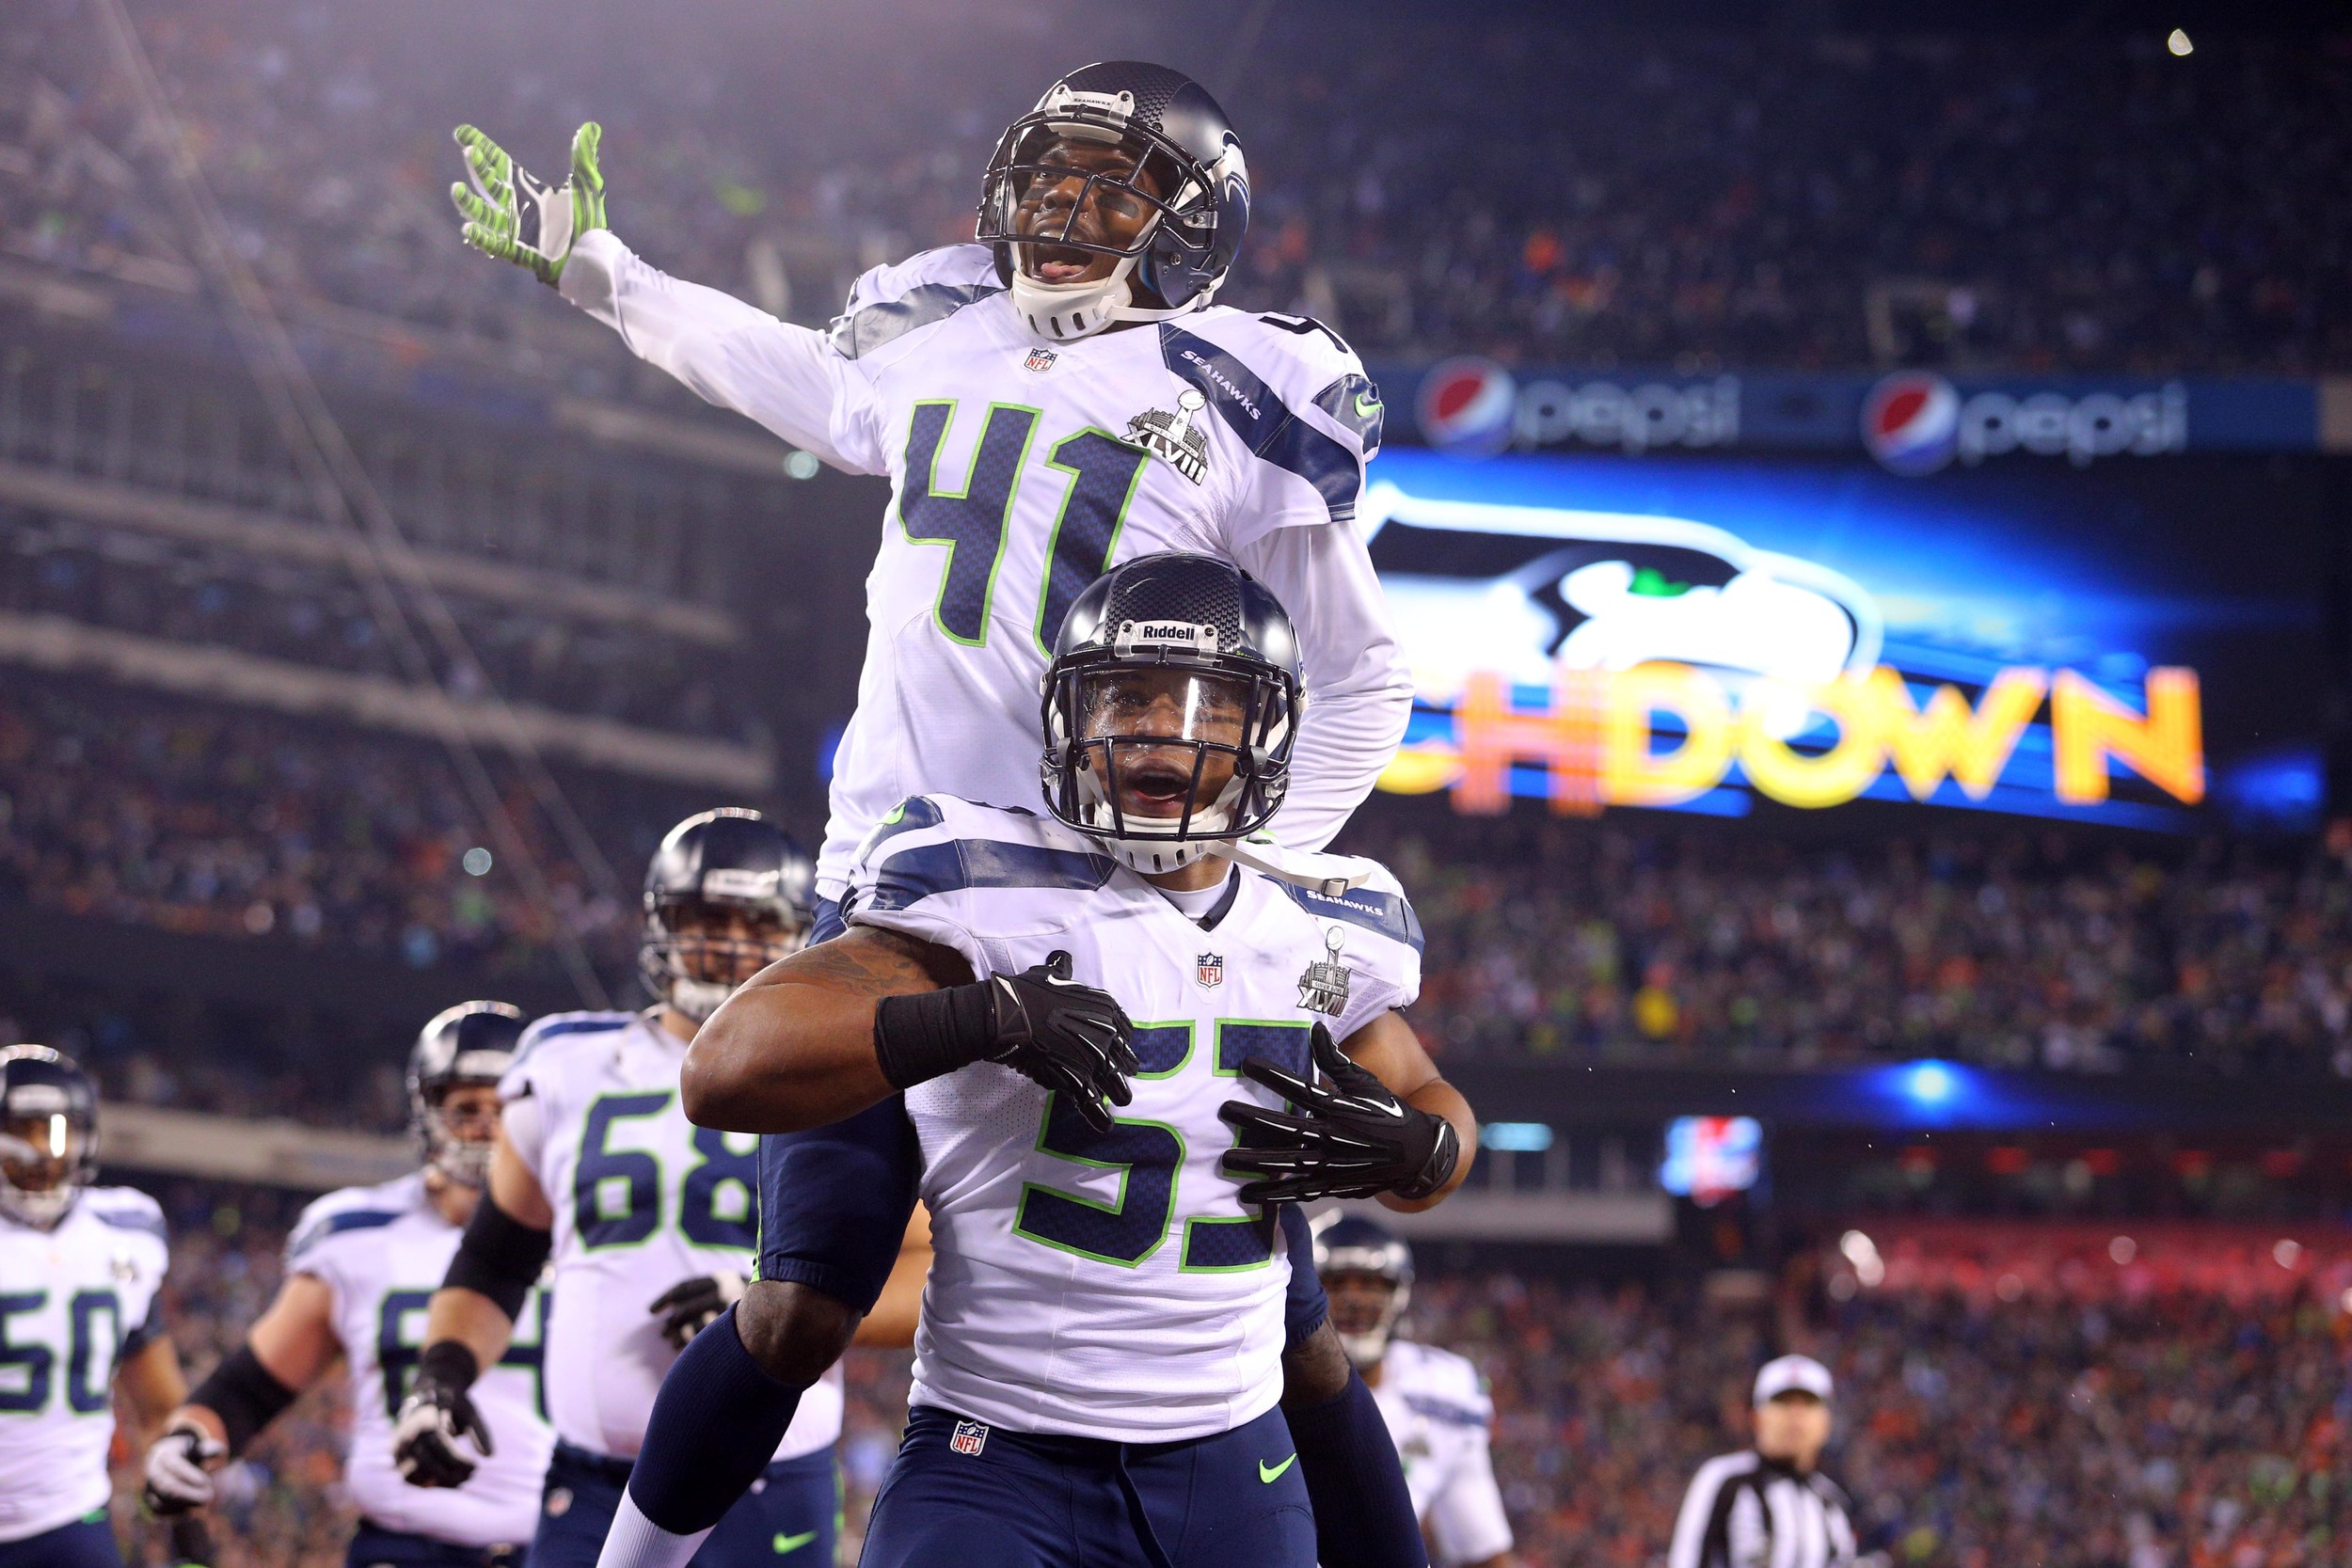 Seattle Seahawks players celebrate a touchdown infront of another sell-out crowd. The franchise is unrivalled in the NFL when it comes to fan engagement and has translated passionate support into on-field success. Image supplied by Action Images.